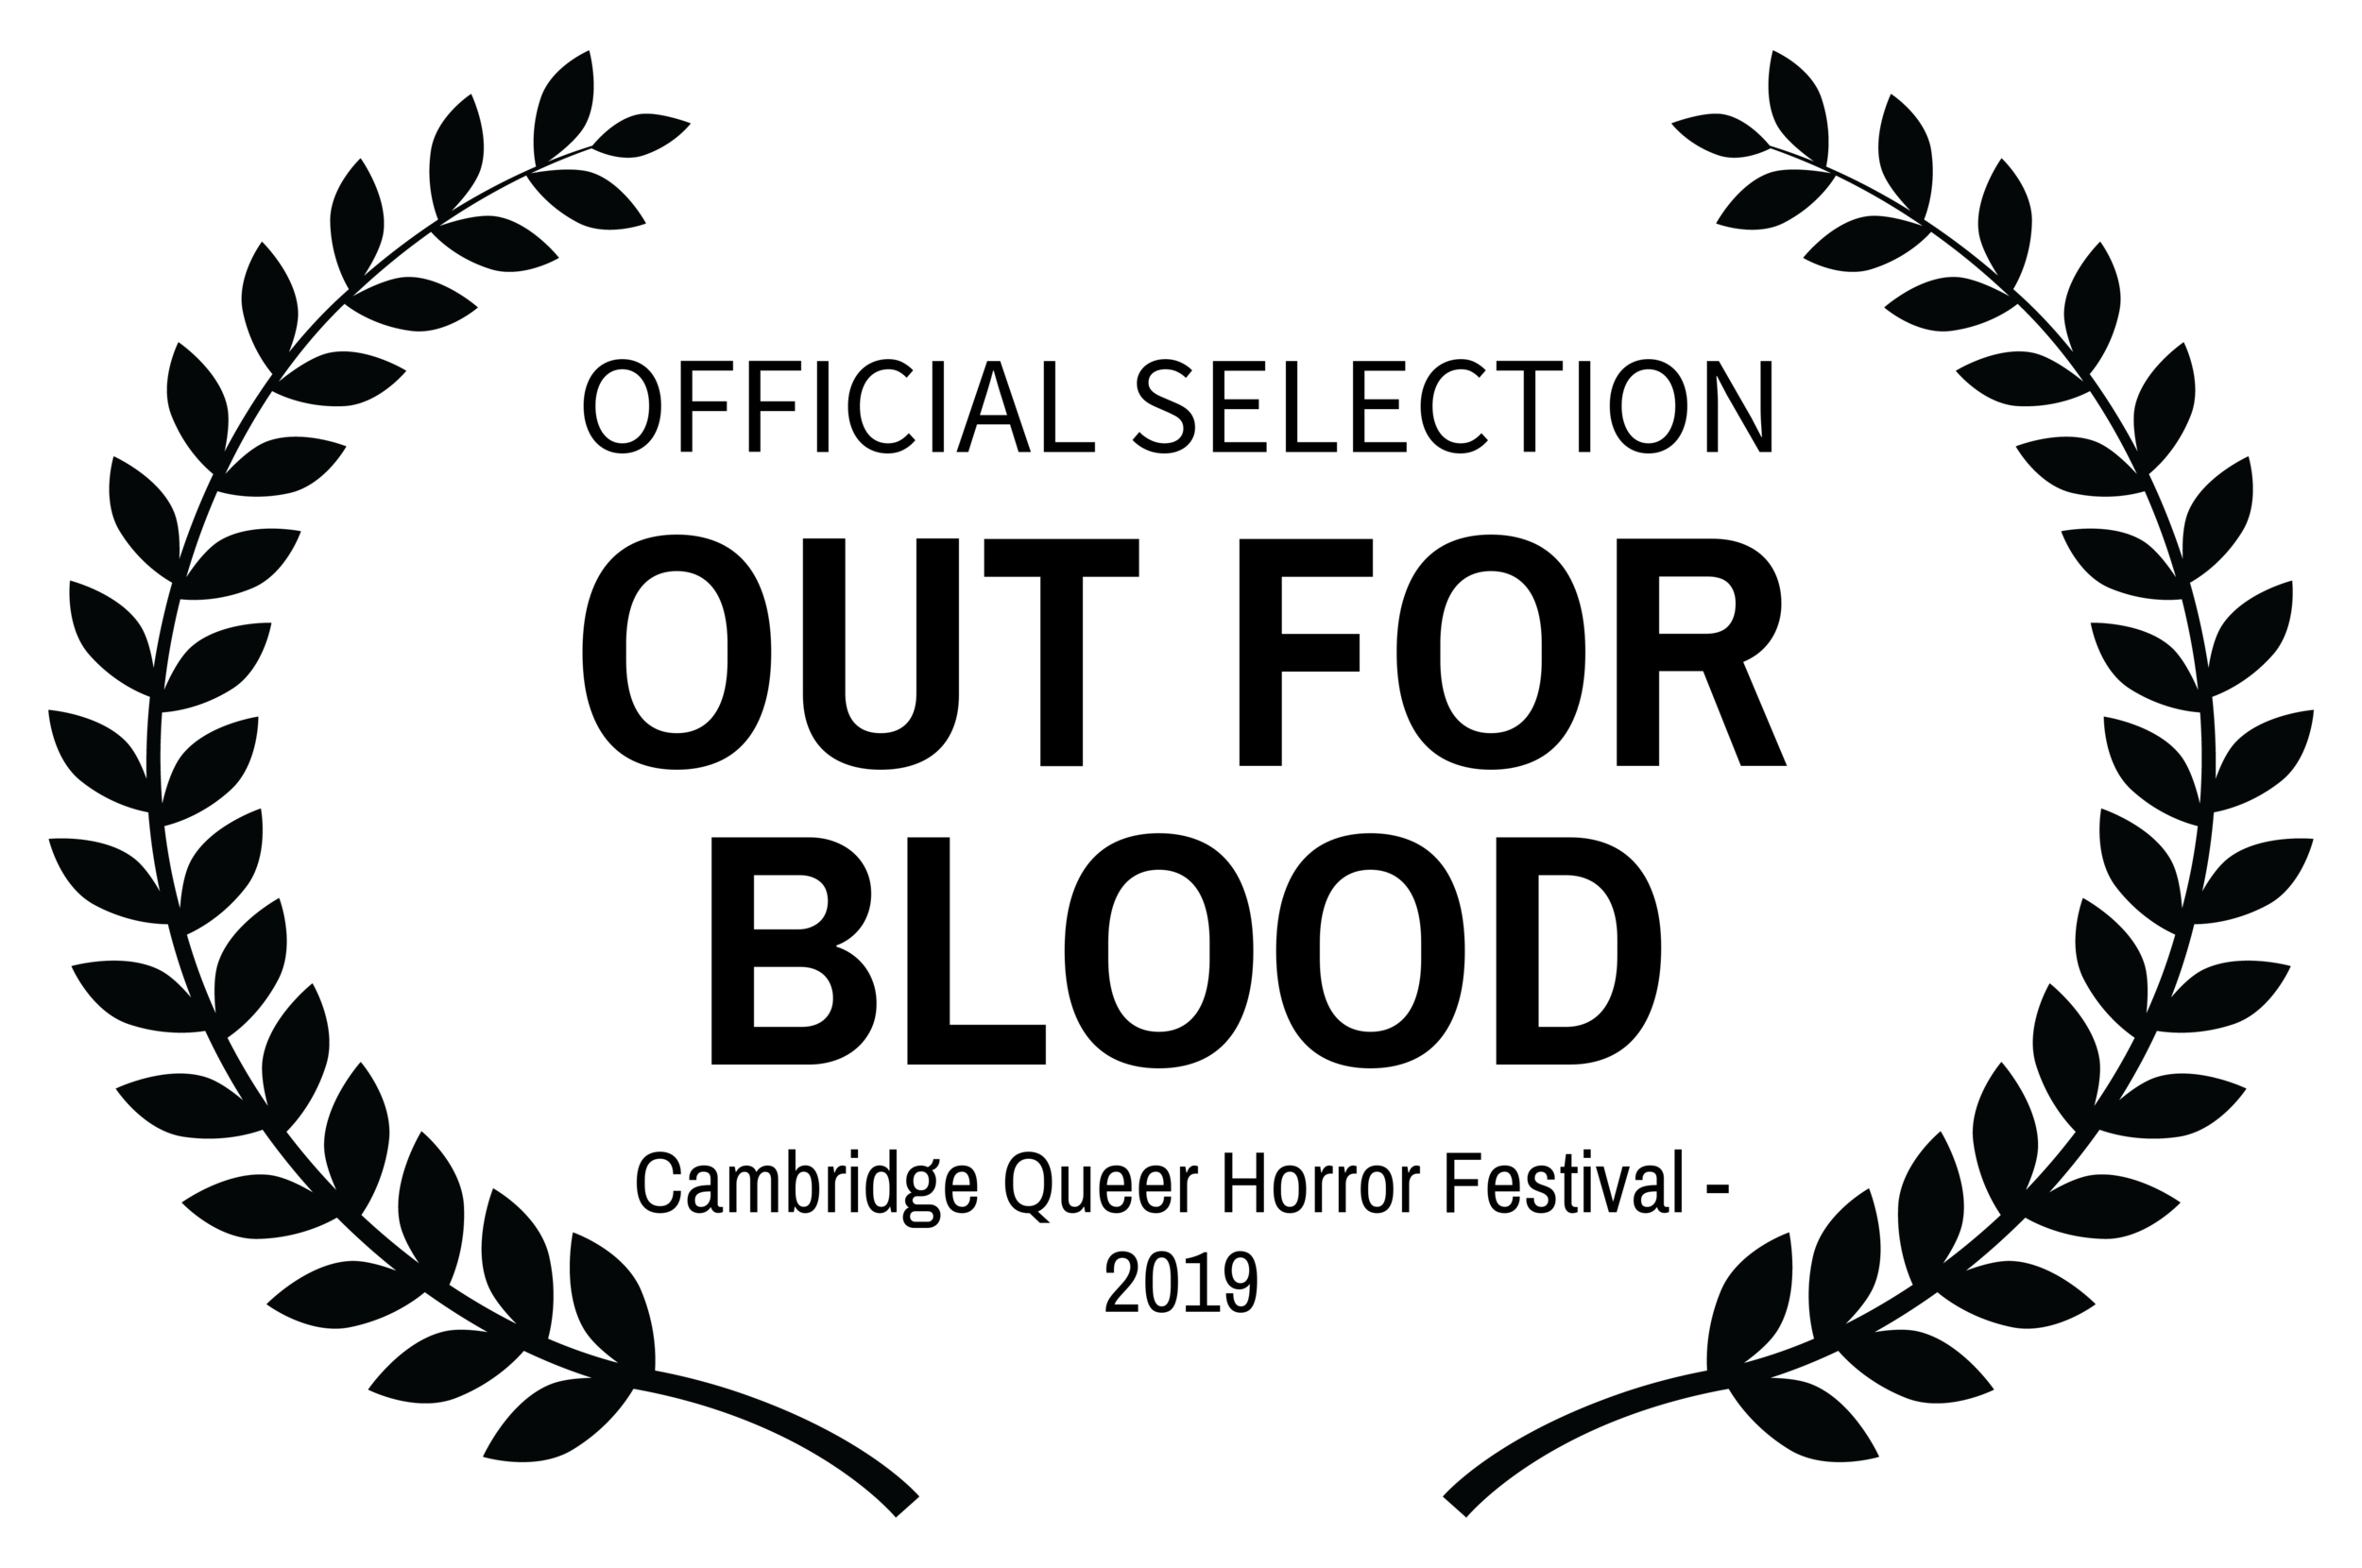 OFFICIALSELECTION-OUTFORBLOOD-CambridgeQueerHorrorFestival-2019-2.png